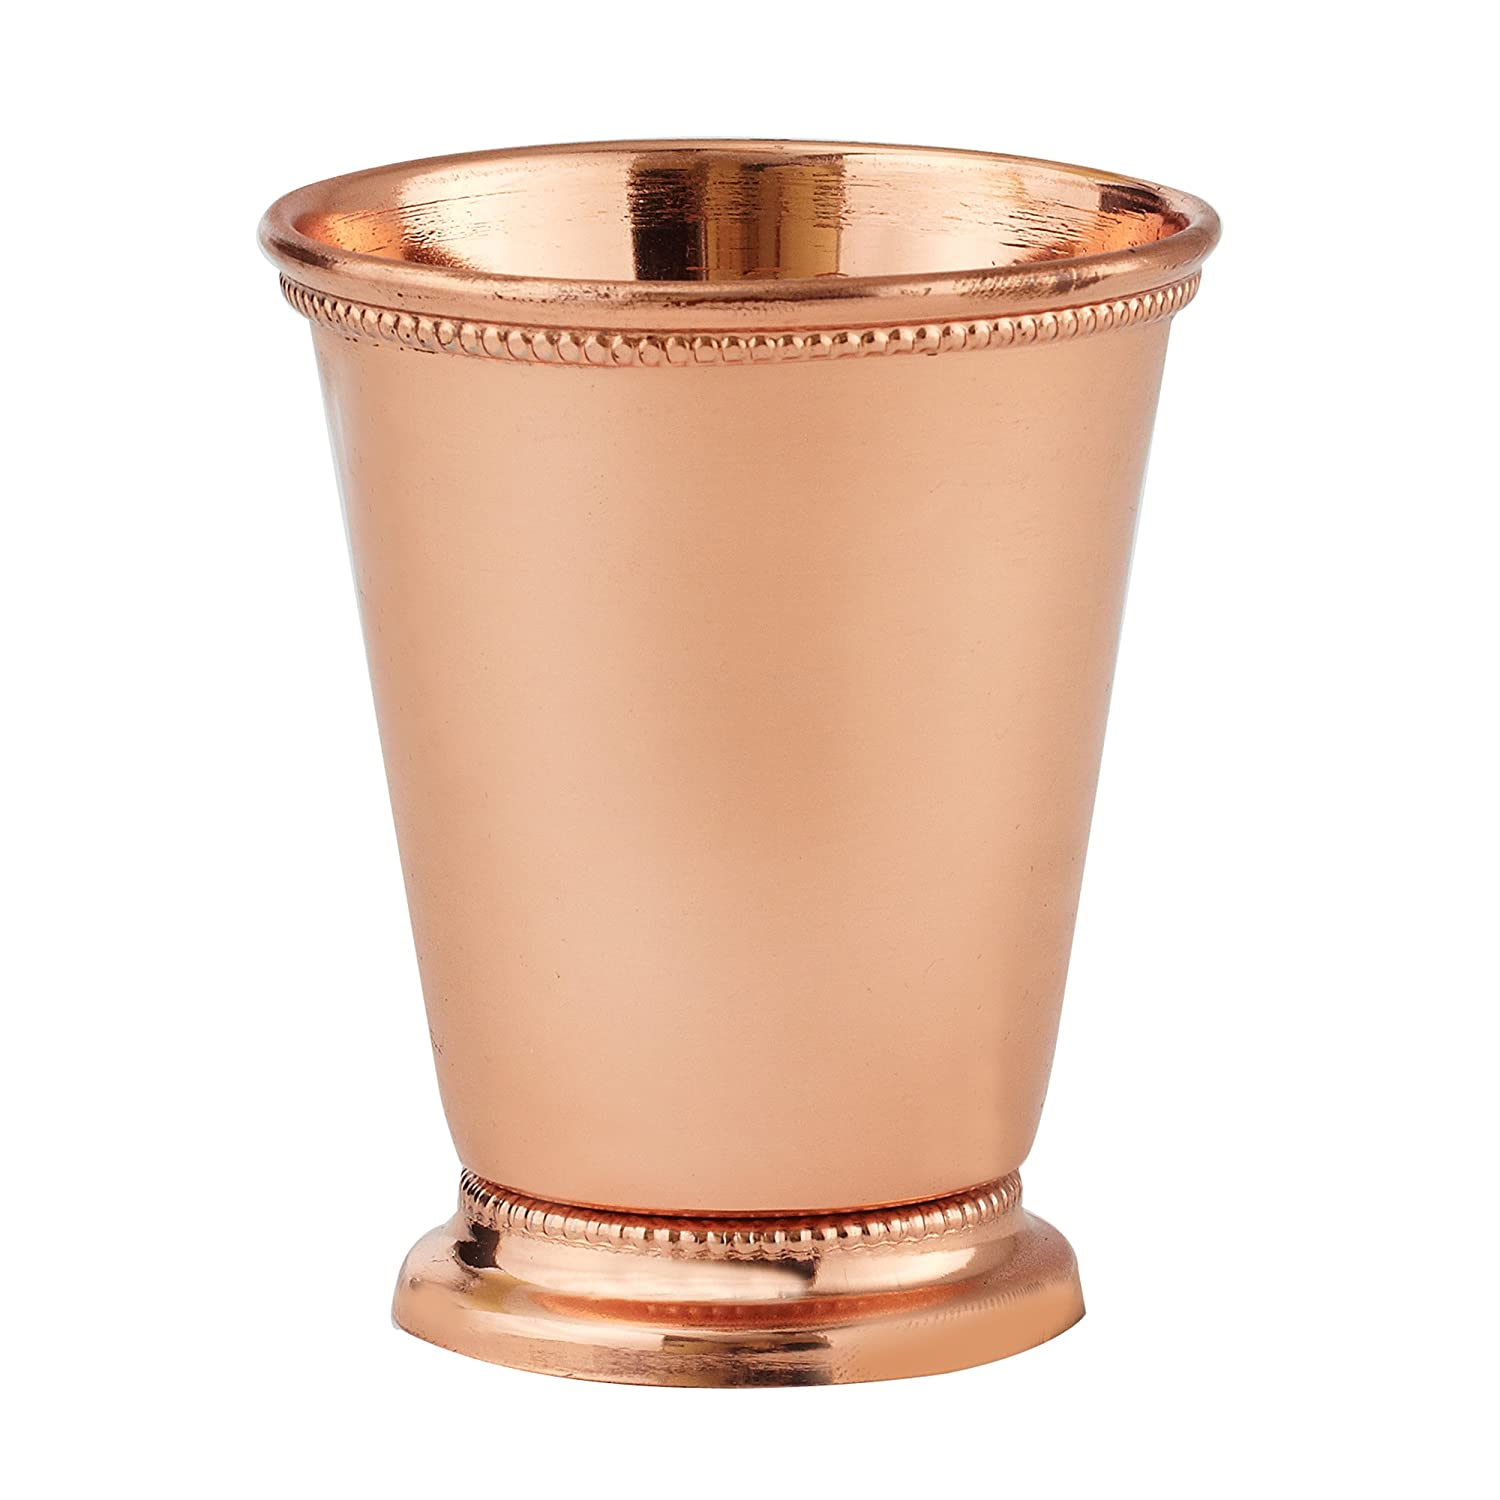 Elegance Copper Plated Mint Julep Cup, 3.5-Inch, Copper Leeber Limited USA 90462